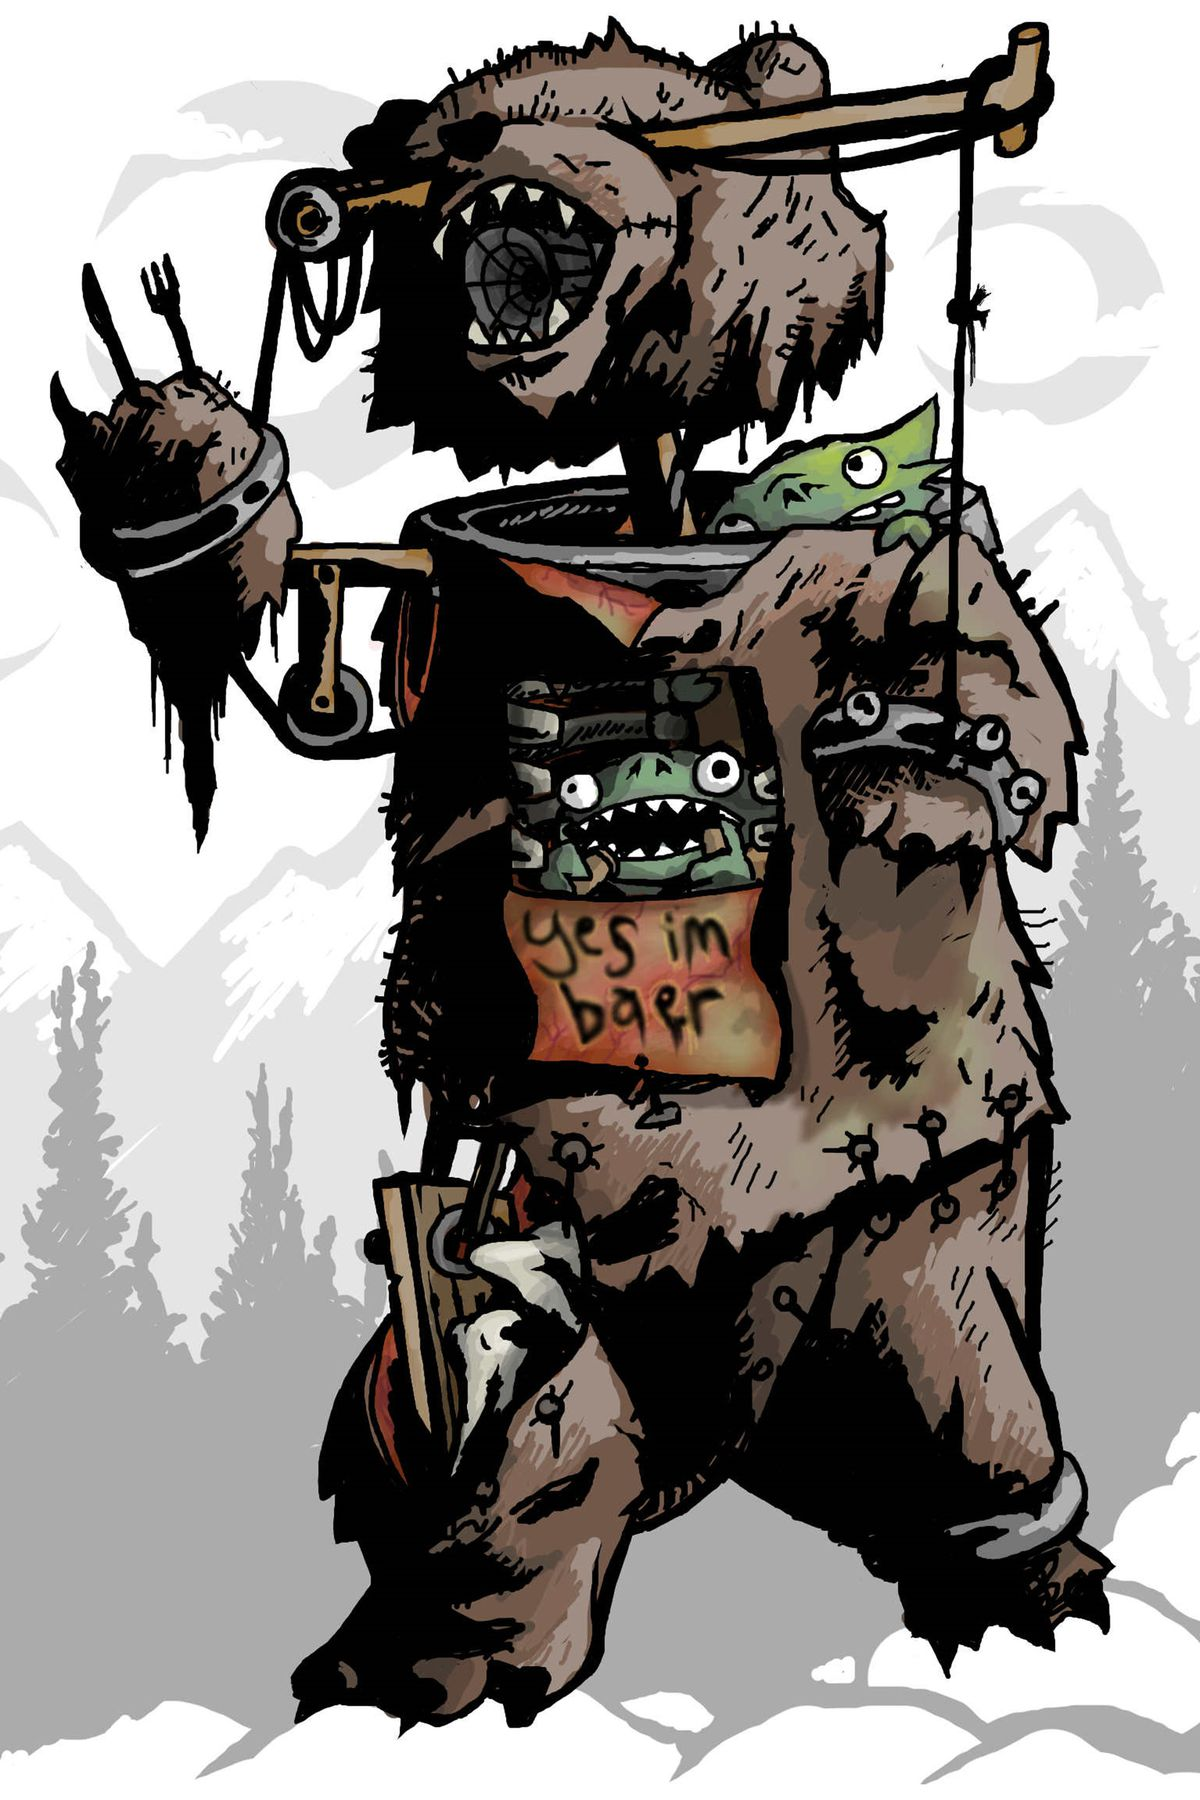 """Three goblins in a bear suit. The sign reads """"Yes I'm baer""""."""